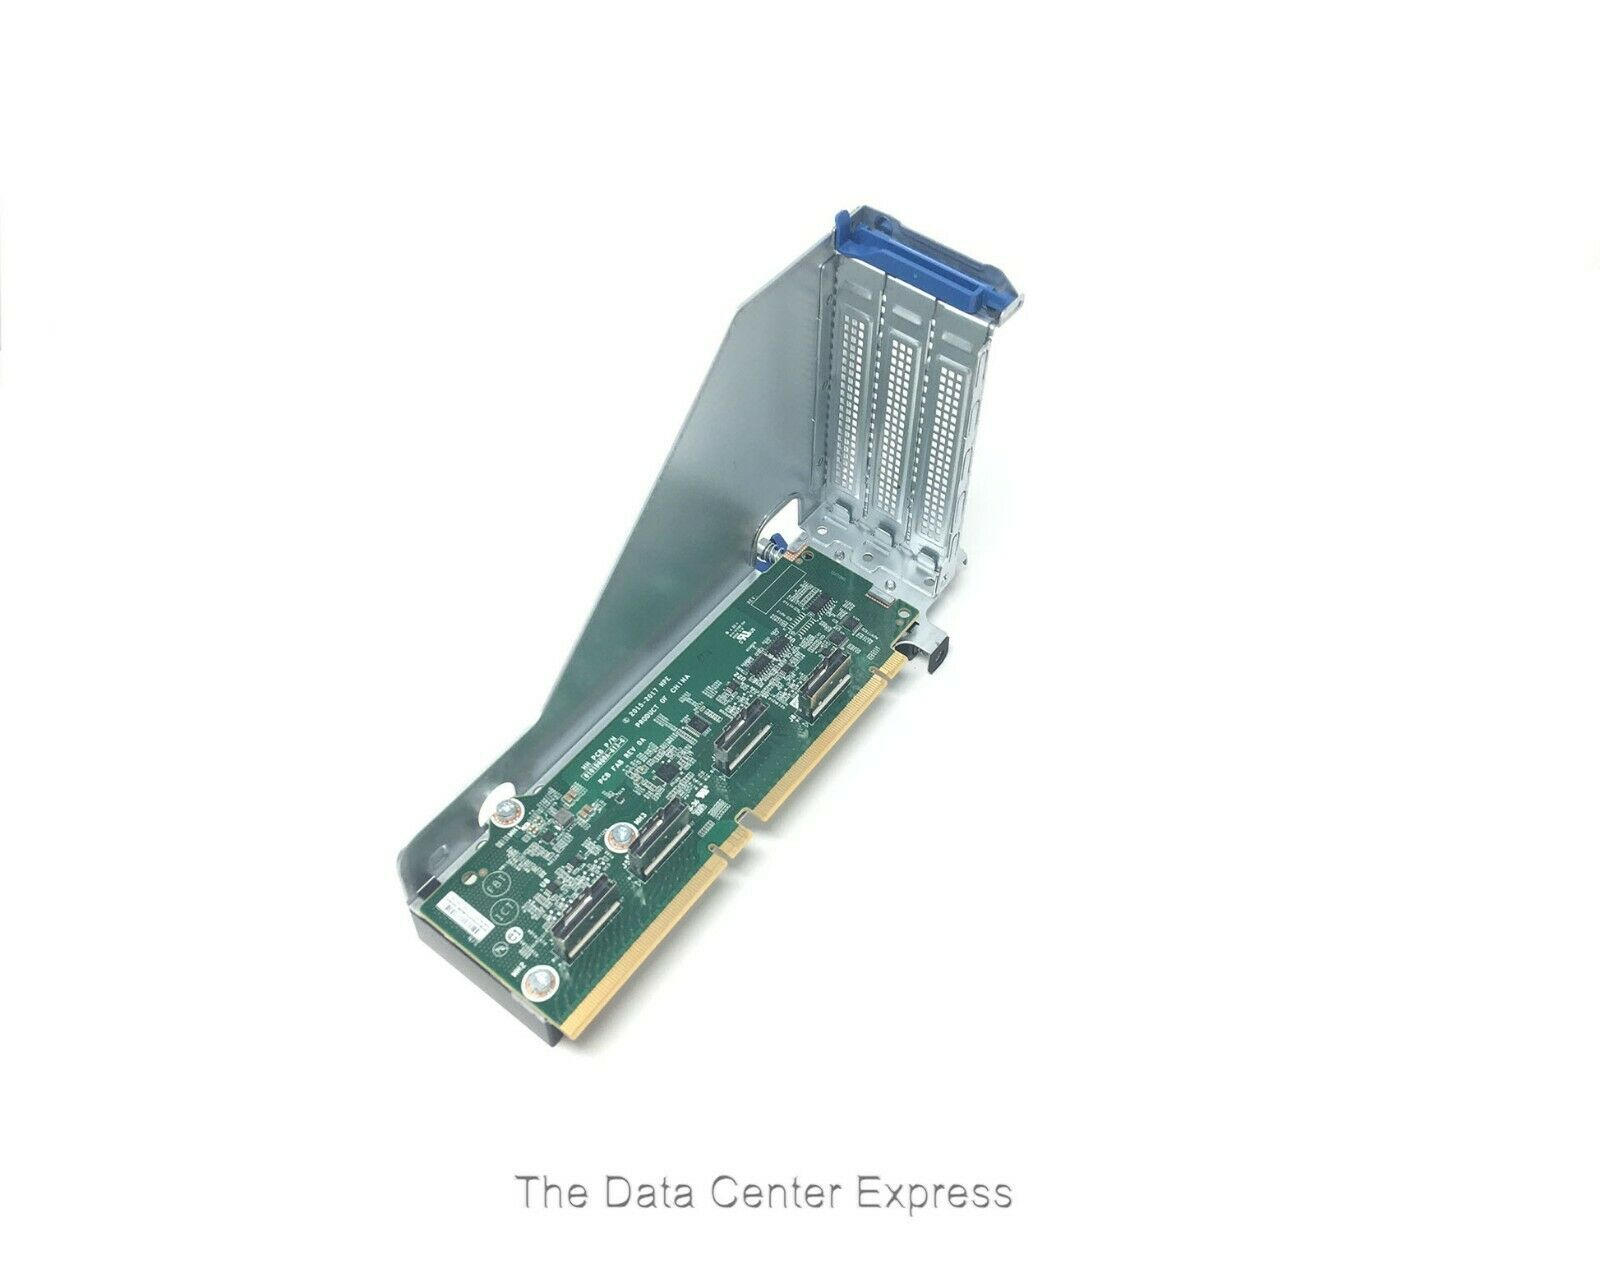 HPE NVMe 8 Solid State Drive Express Bay - enablement kit